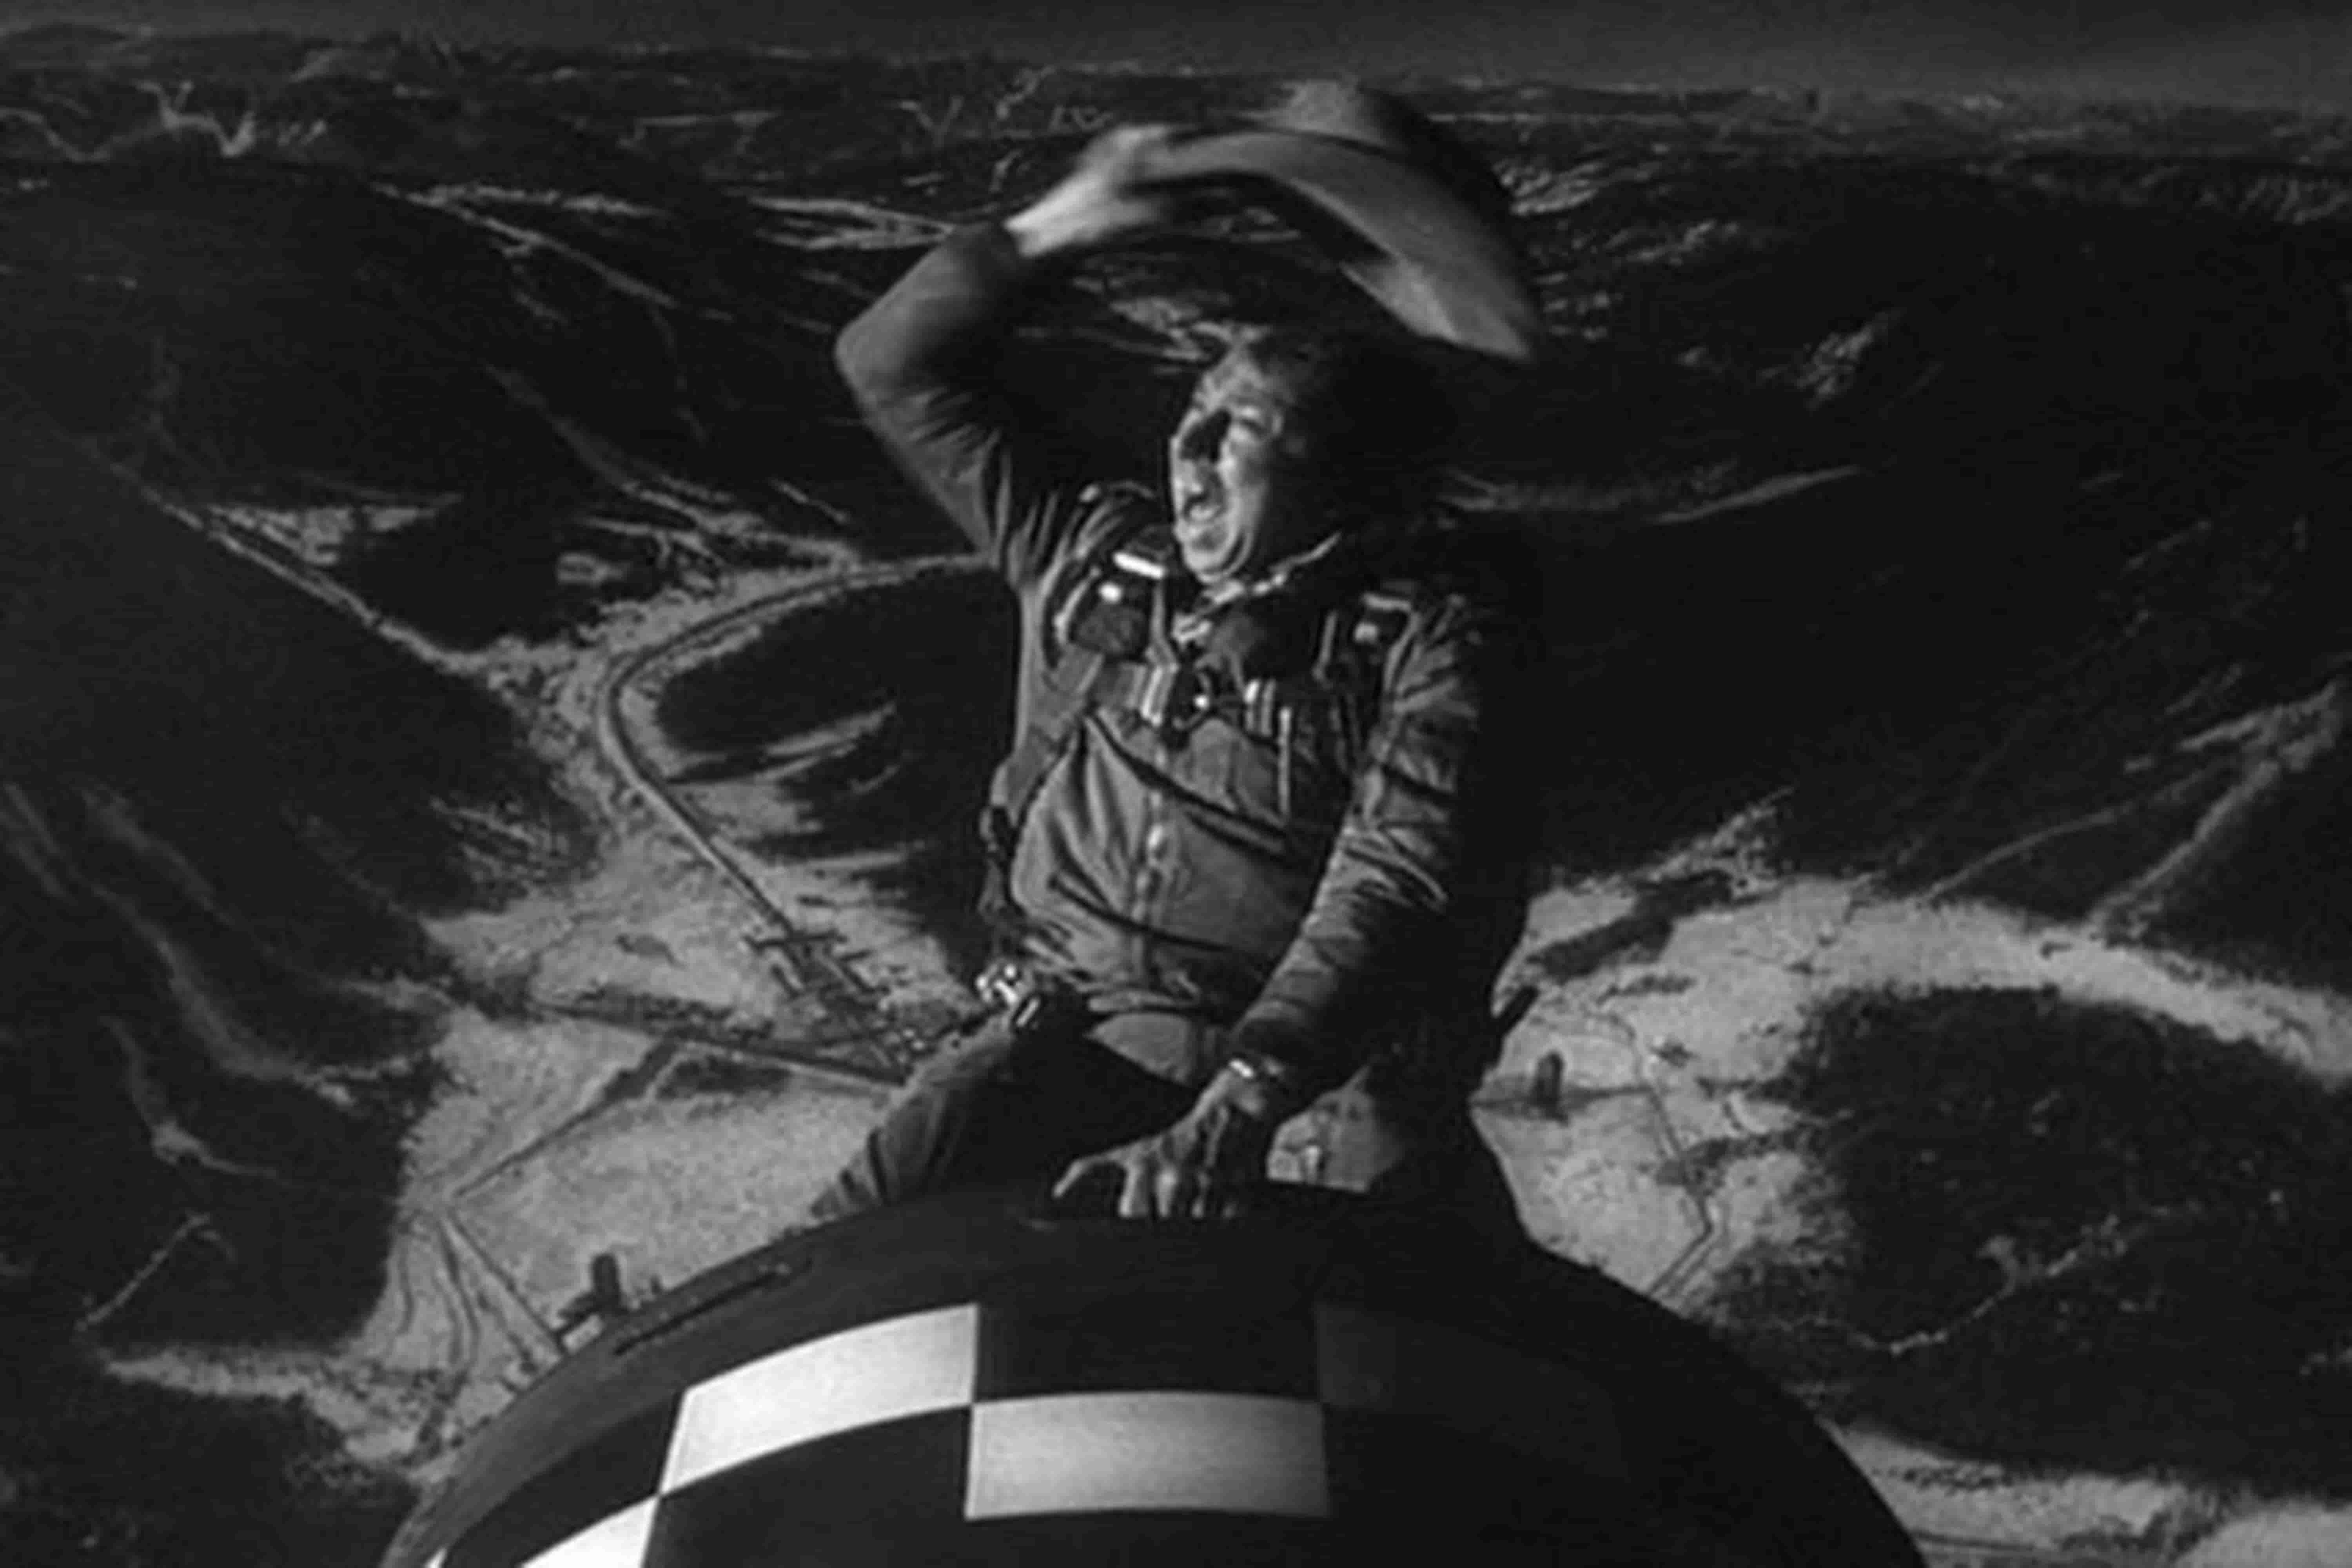 Slim Pickens in Dr. Strangelove riding the atom bomb out of the plane like a rodeo cowboy